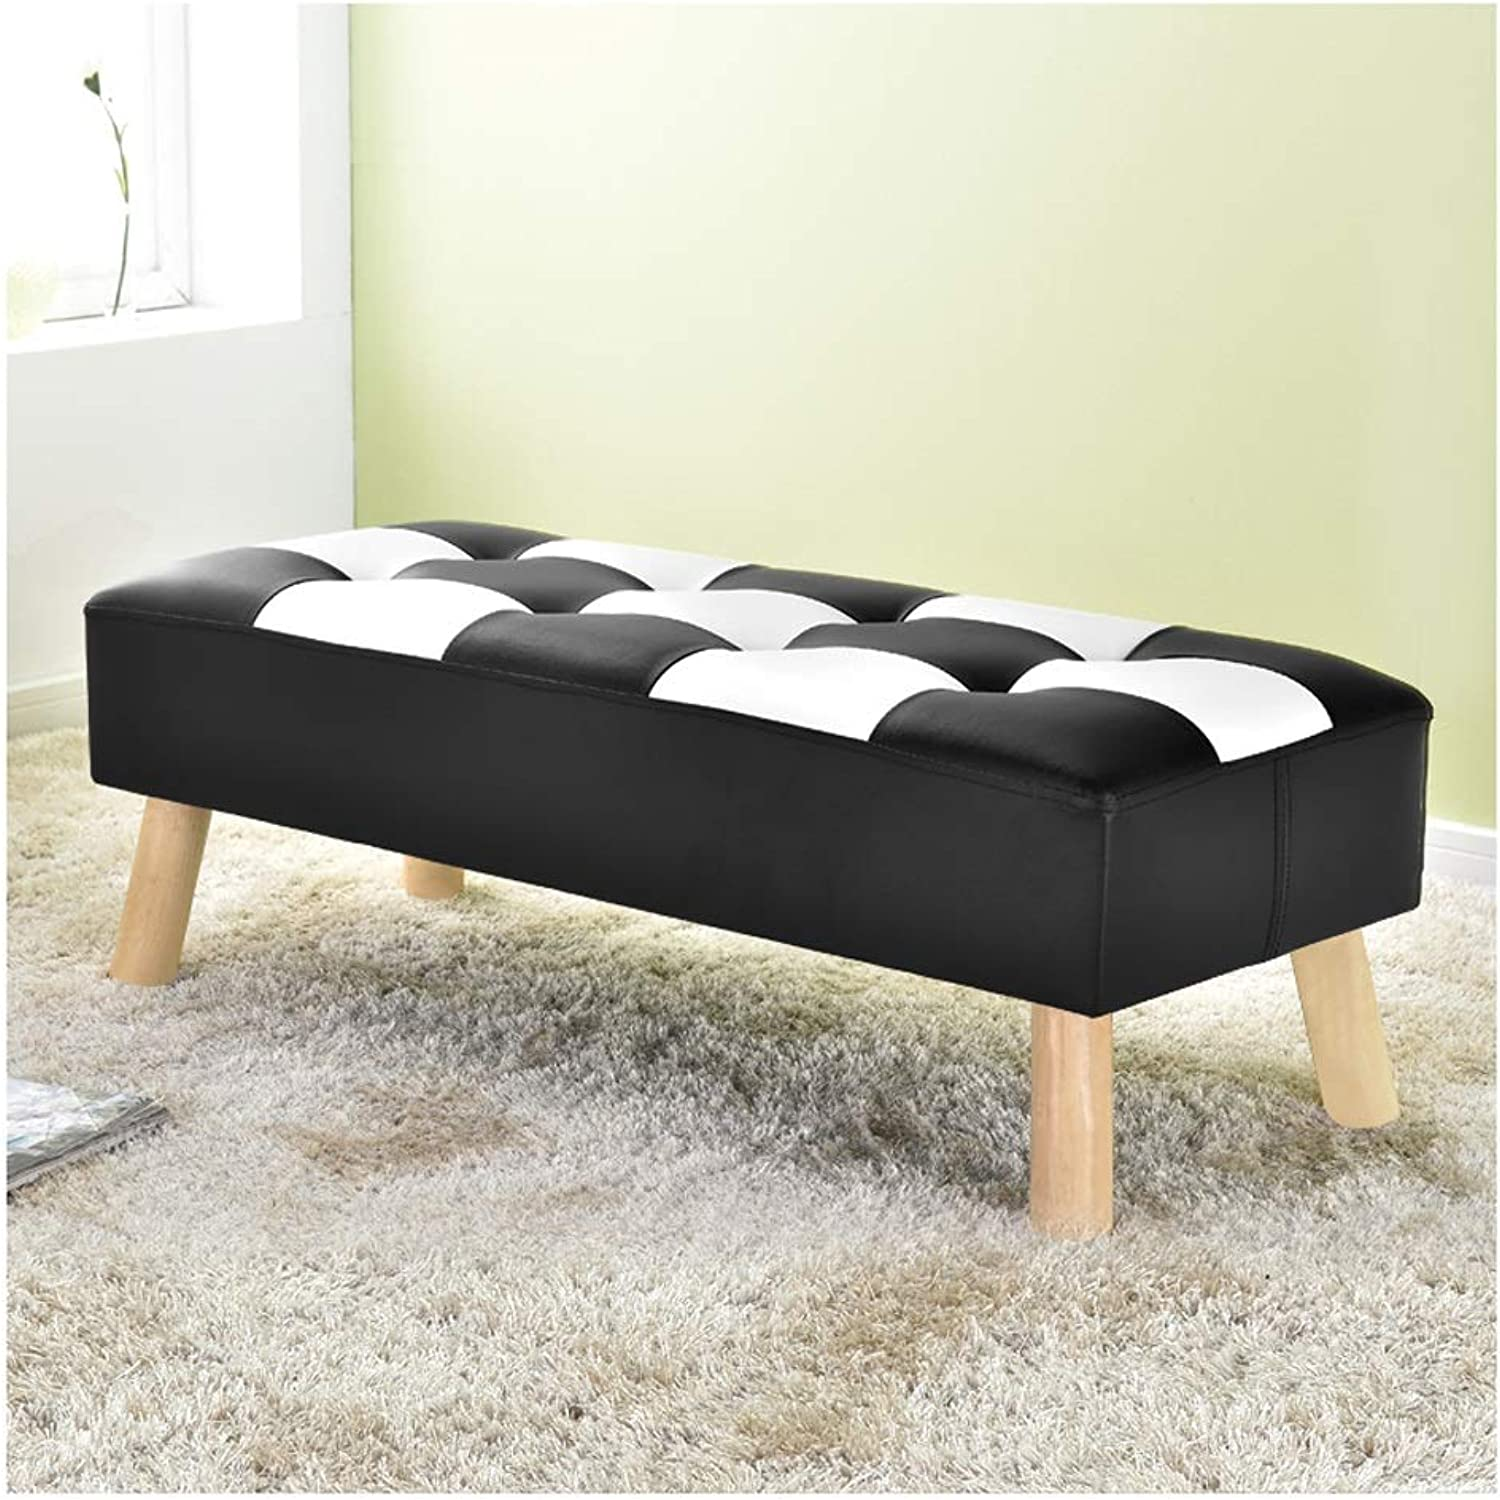 Stools Change shoes Bench, Solid Wood Sofa Bench, Modern Minimalist Clothing Store Bench, shoes Store Fitting Room Rest Bench (color   Black 100×40×32cm)